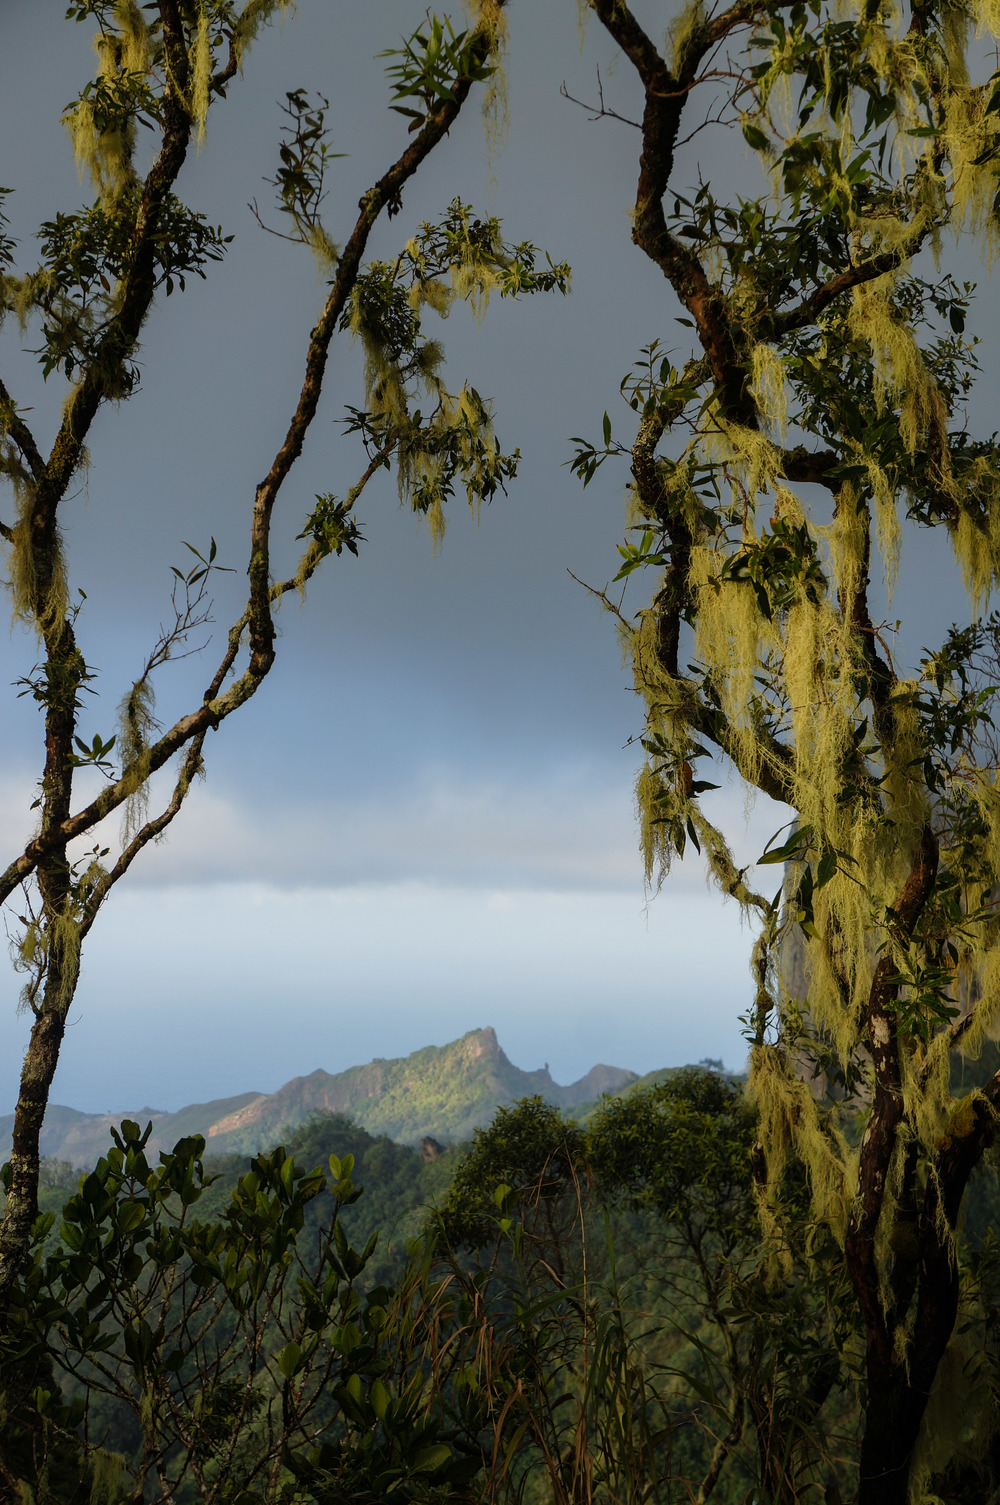 Moss-covered trees and the view of the Pacific Ocean.